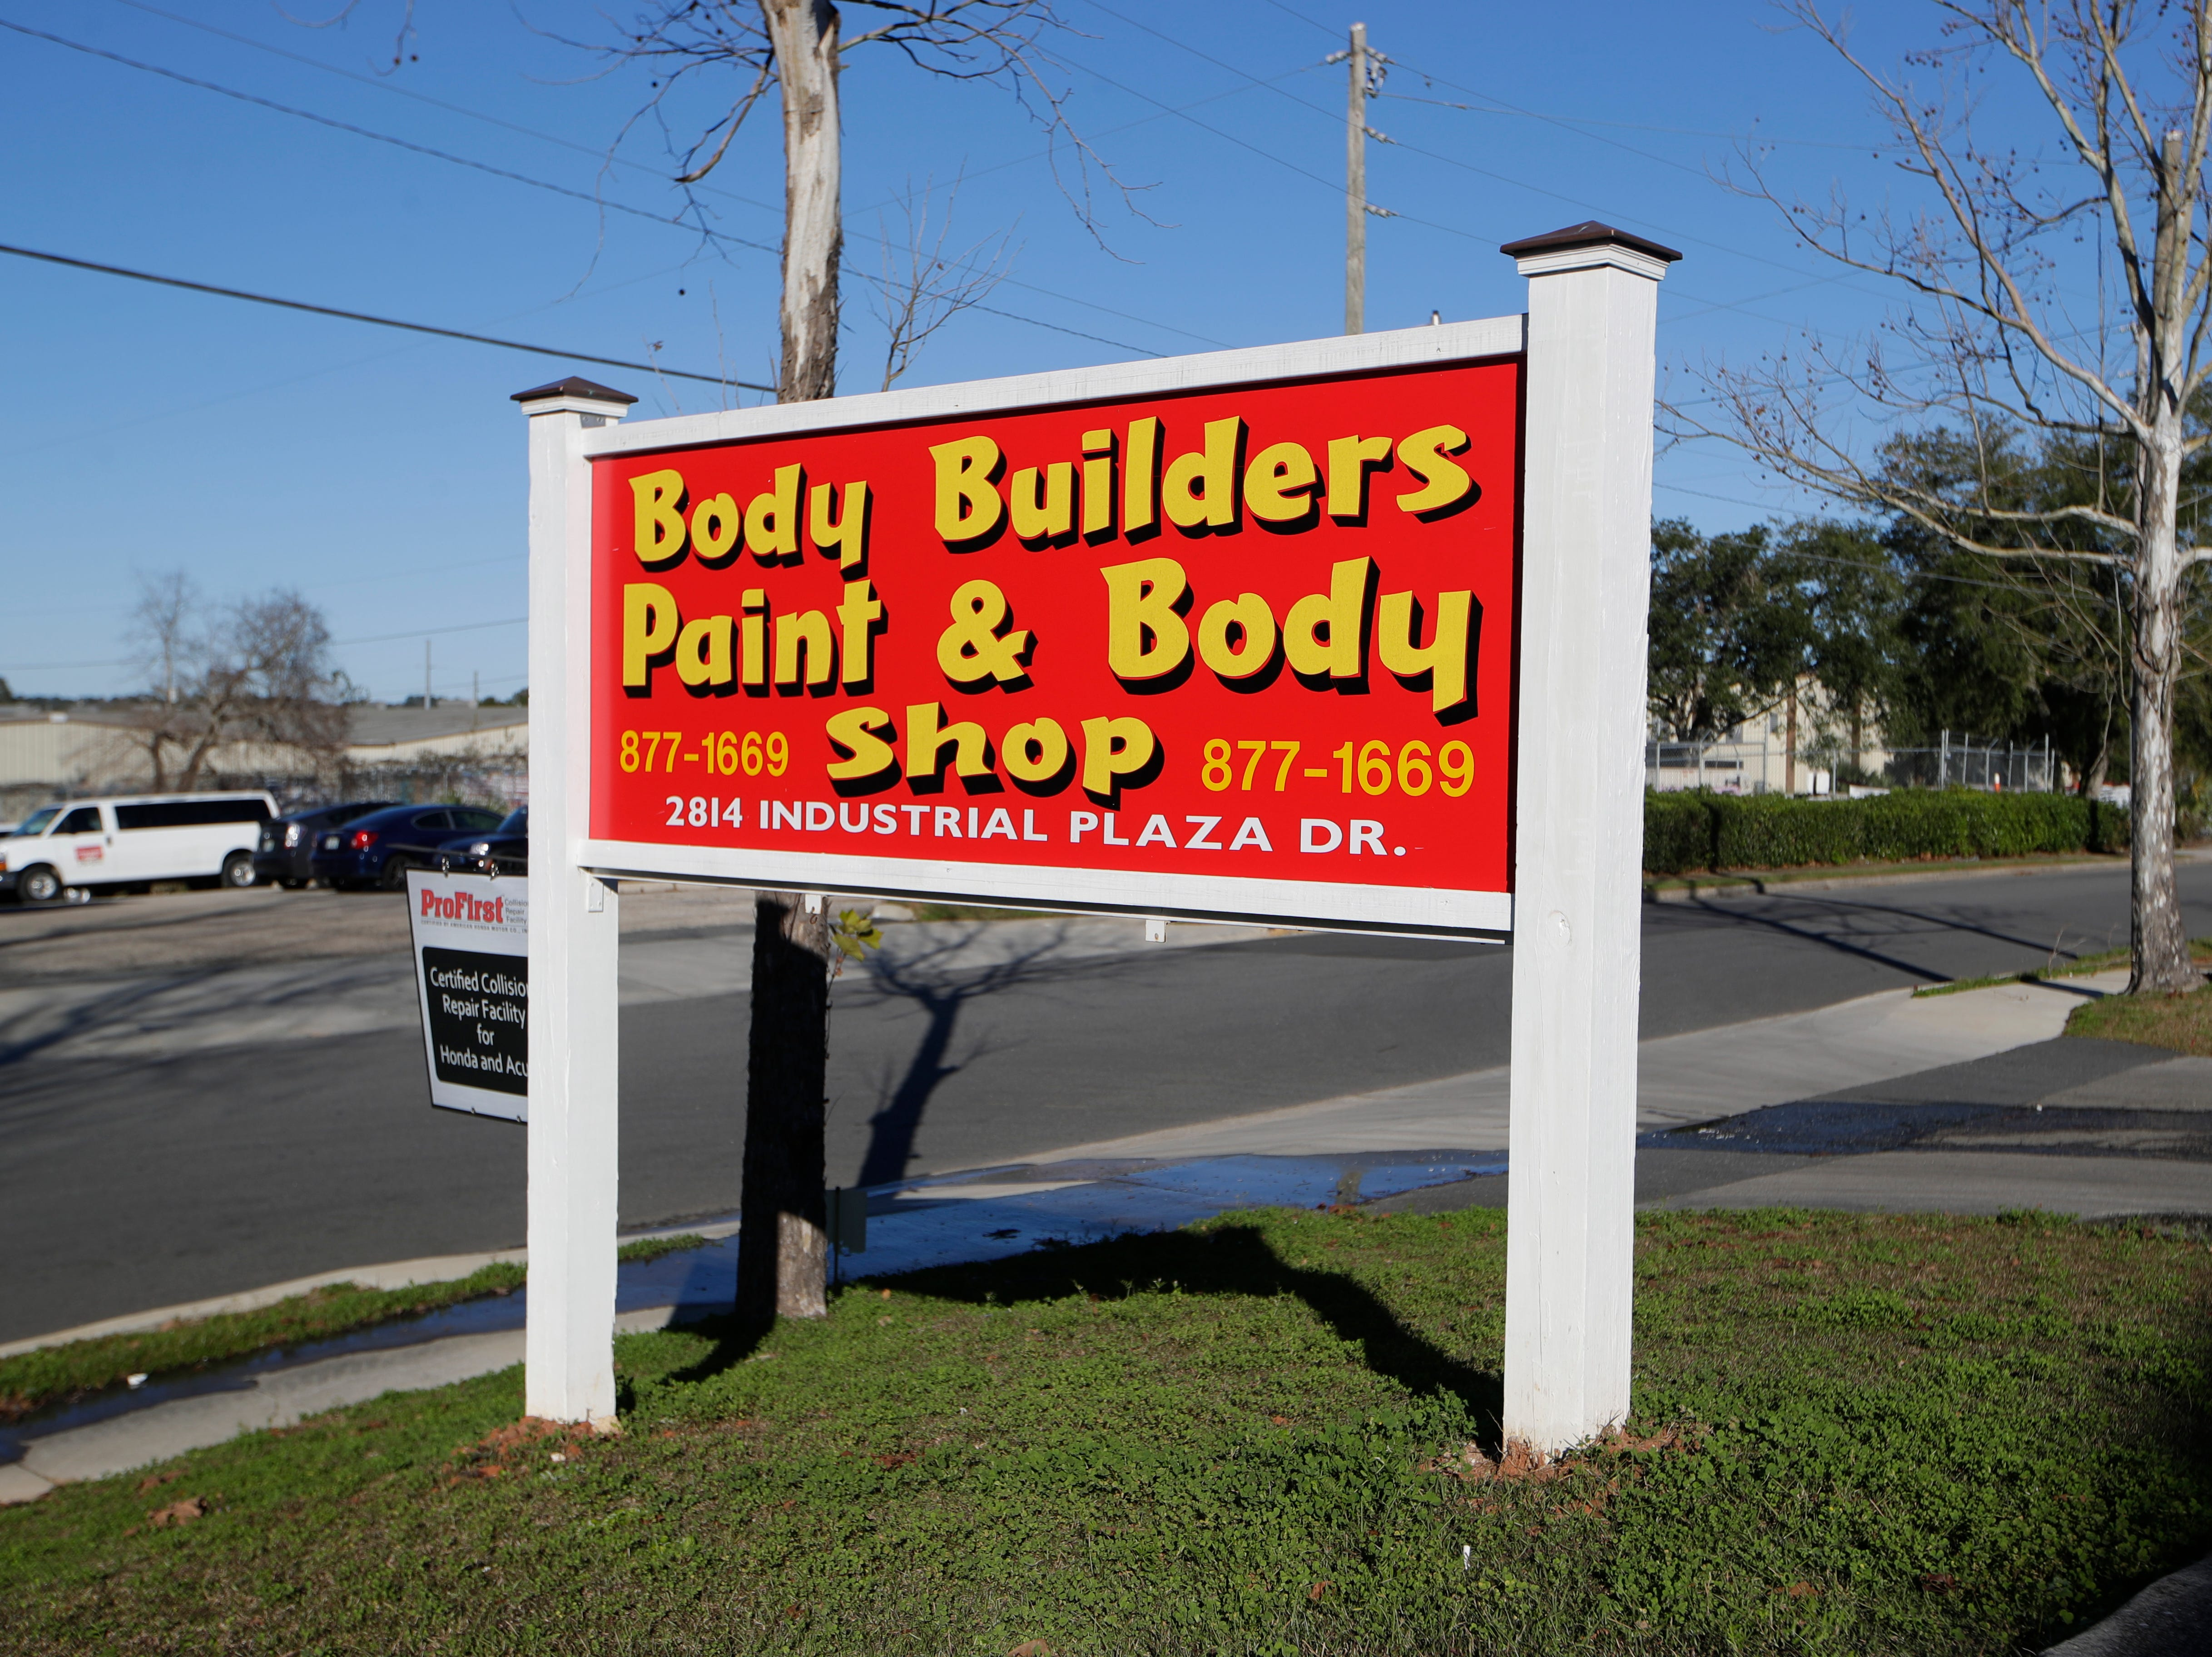 Body Builders Paint and Body Shop and other auto repair businesses in Tallahassee are facing backlogs of work after Hurricane Michael in October.